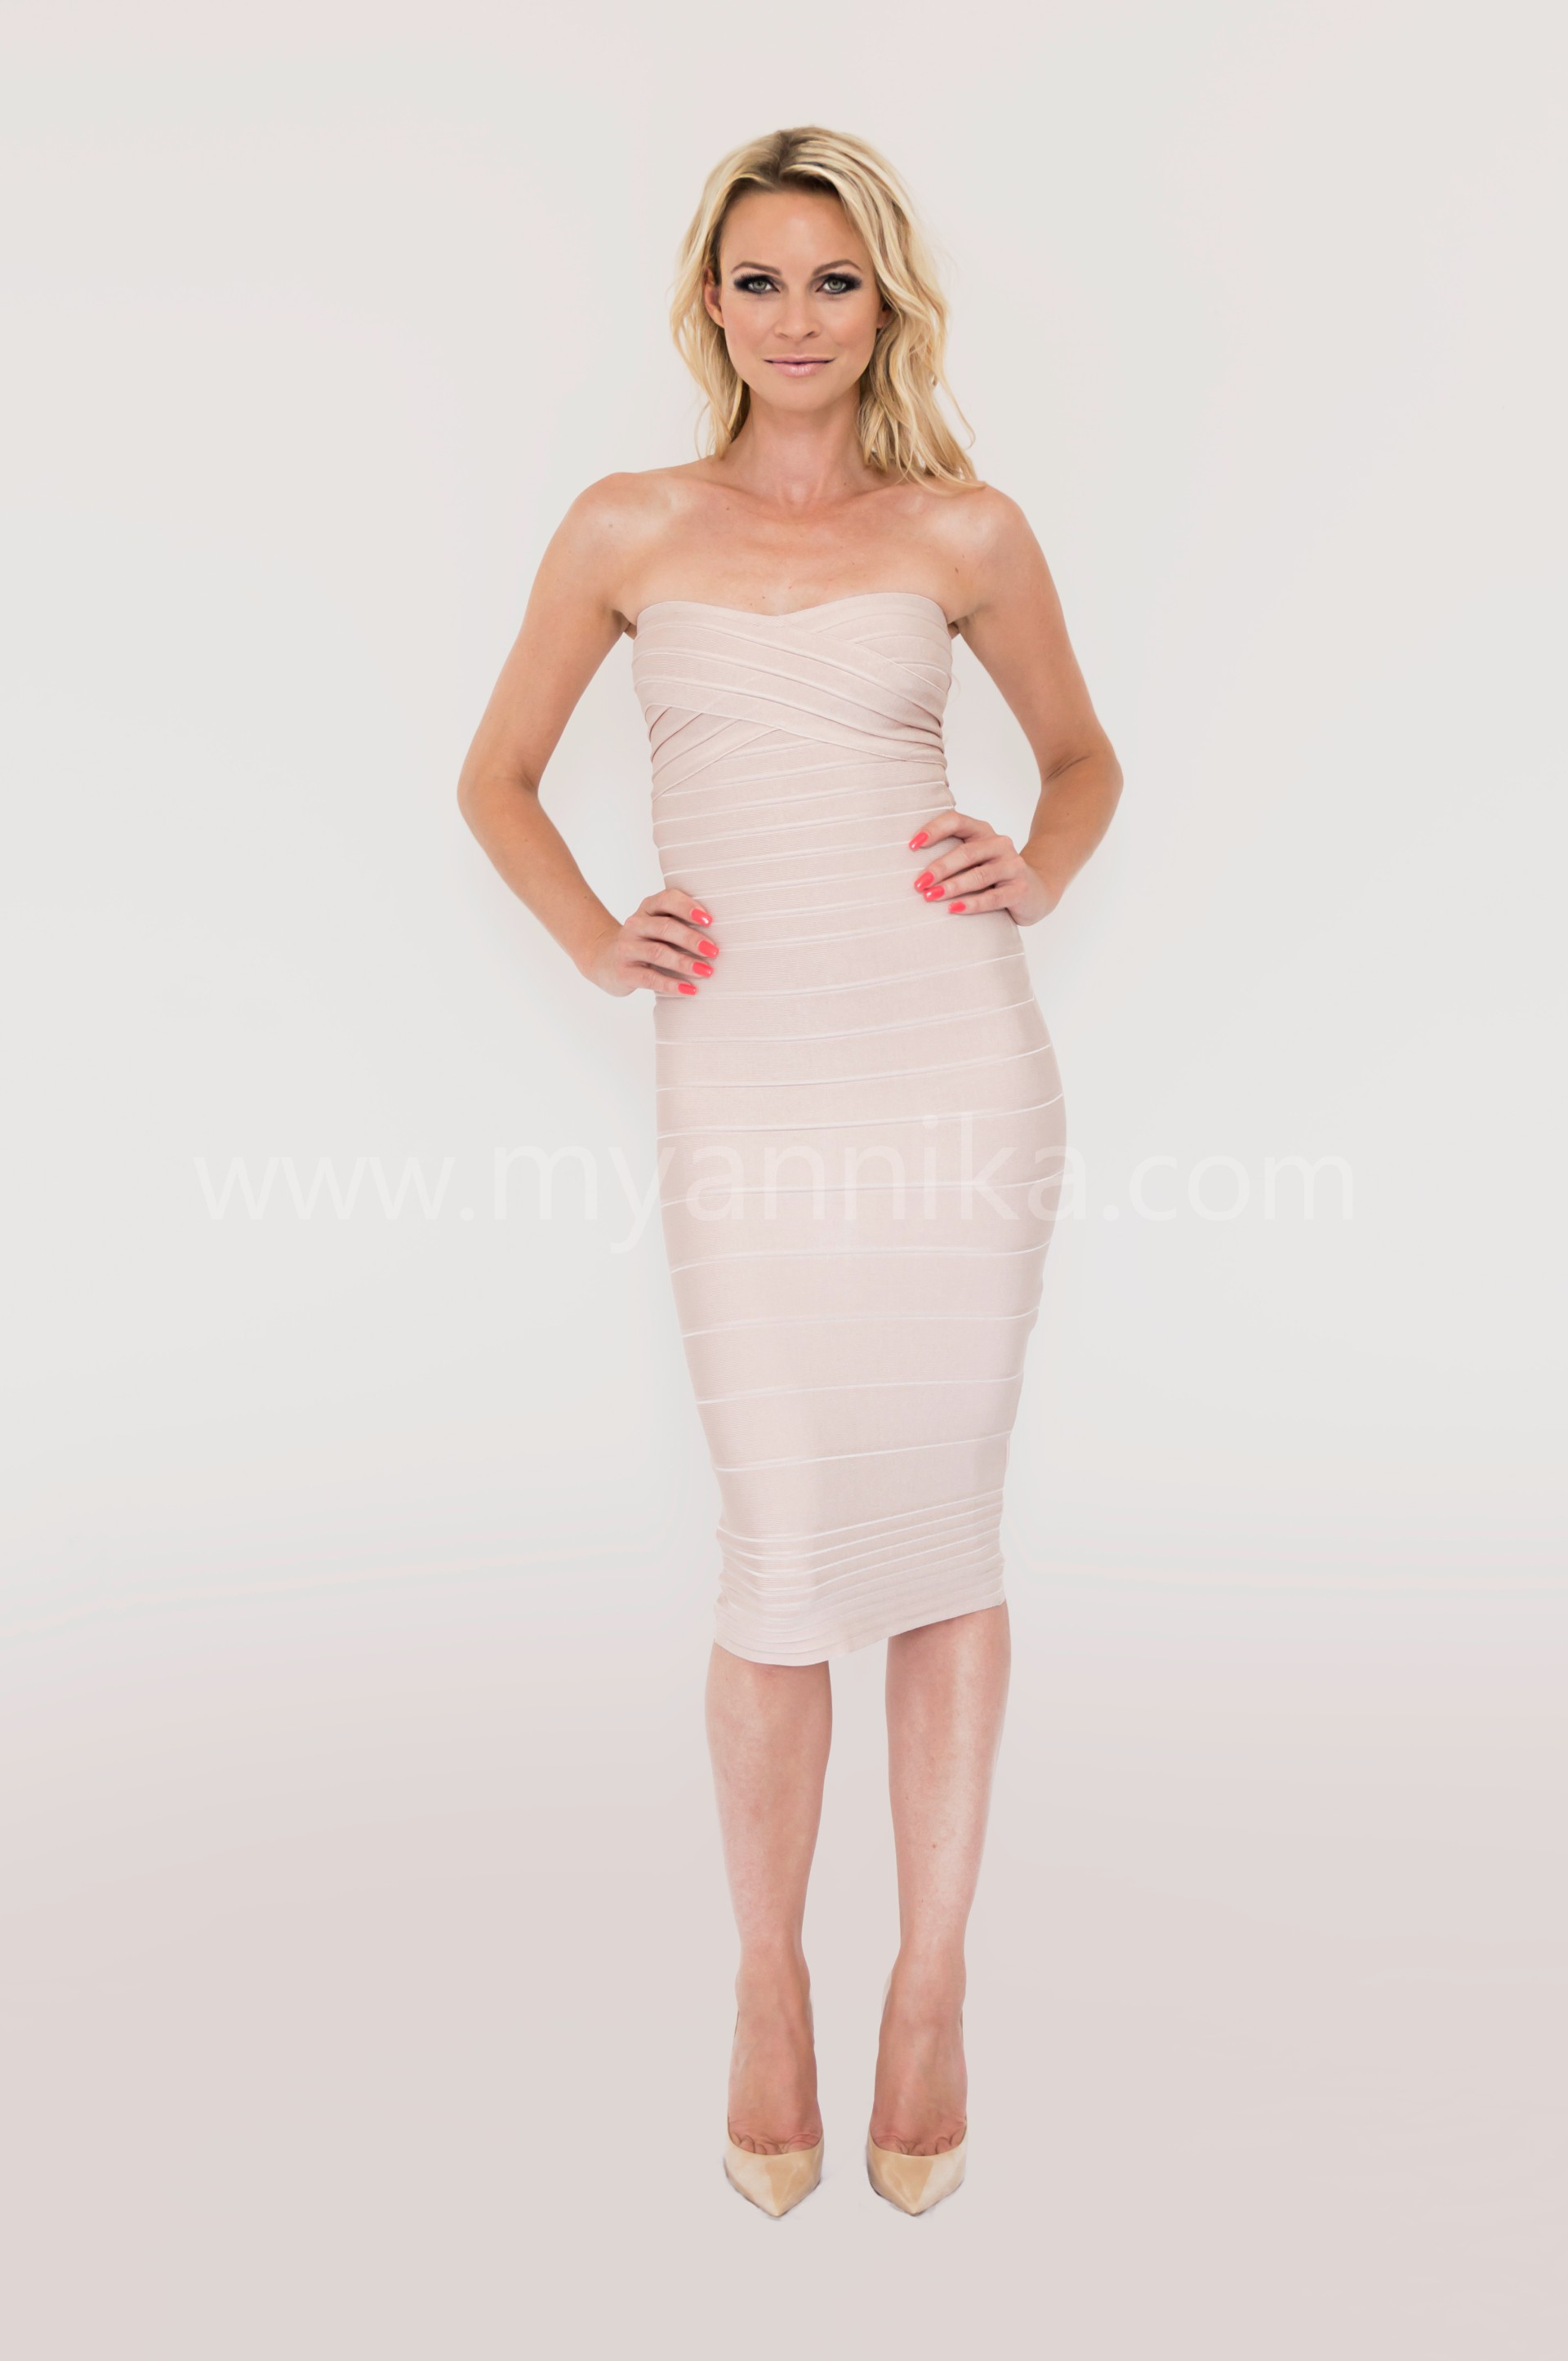 6242f32f43 Paris long - Nude Over the Knee Strapless Bandage Dress Annika - Bandage  Dresses | Celebrity Party Dresses ...